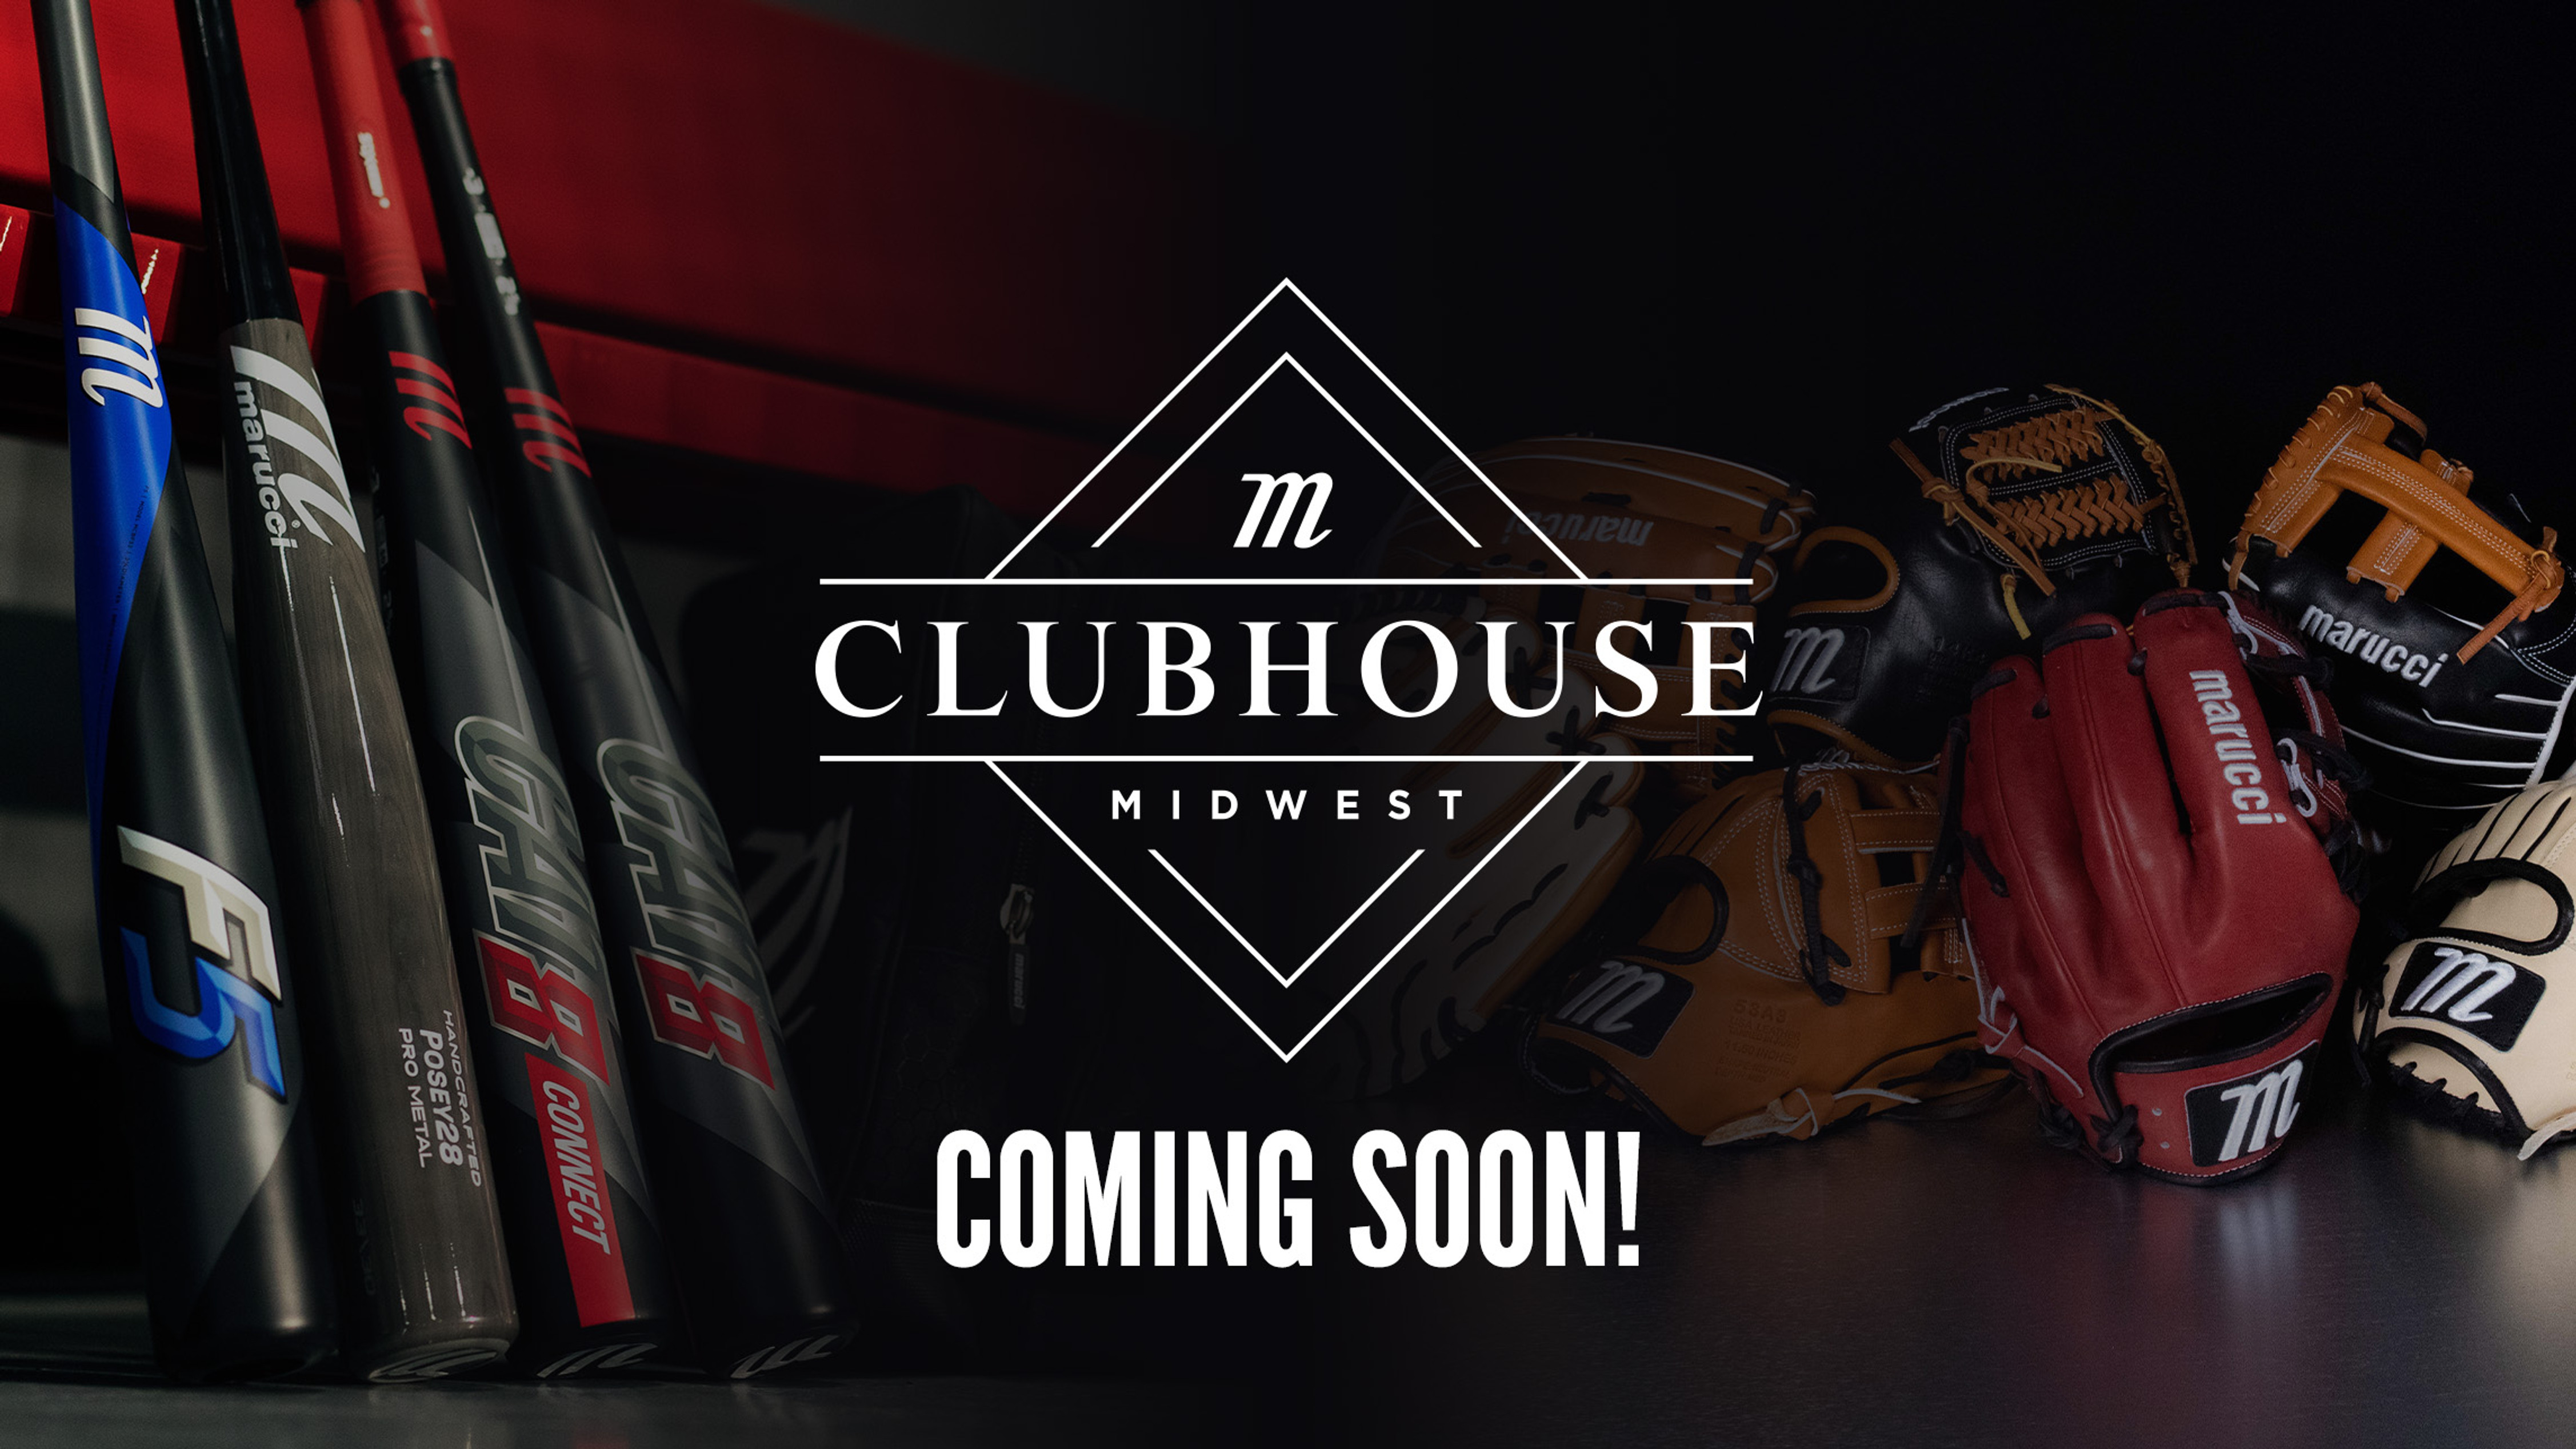 Marucci Clubhouse to open Midwest location